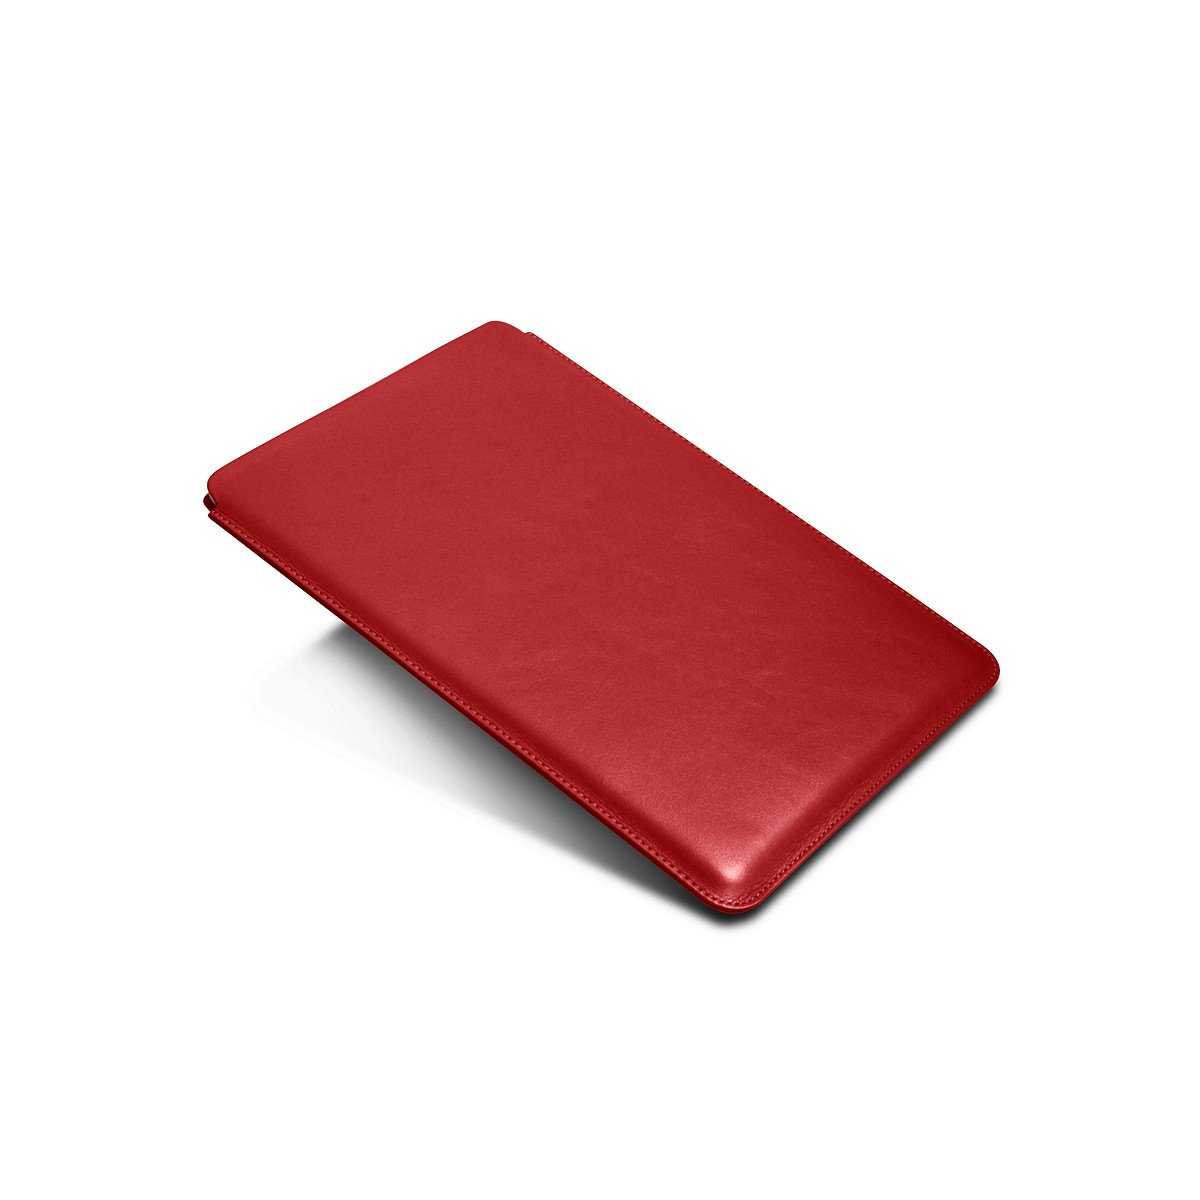 Lucrin - Sleeve for iPad Air 2 / iPad Pro 9.7-inch - Red - Smooth Leather